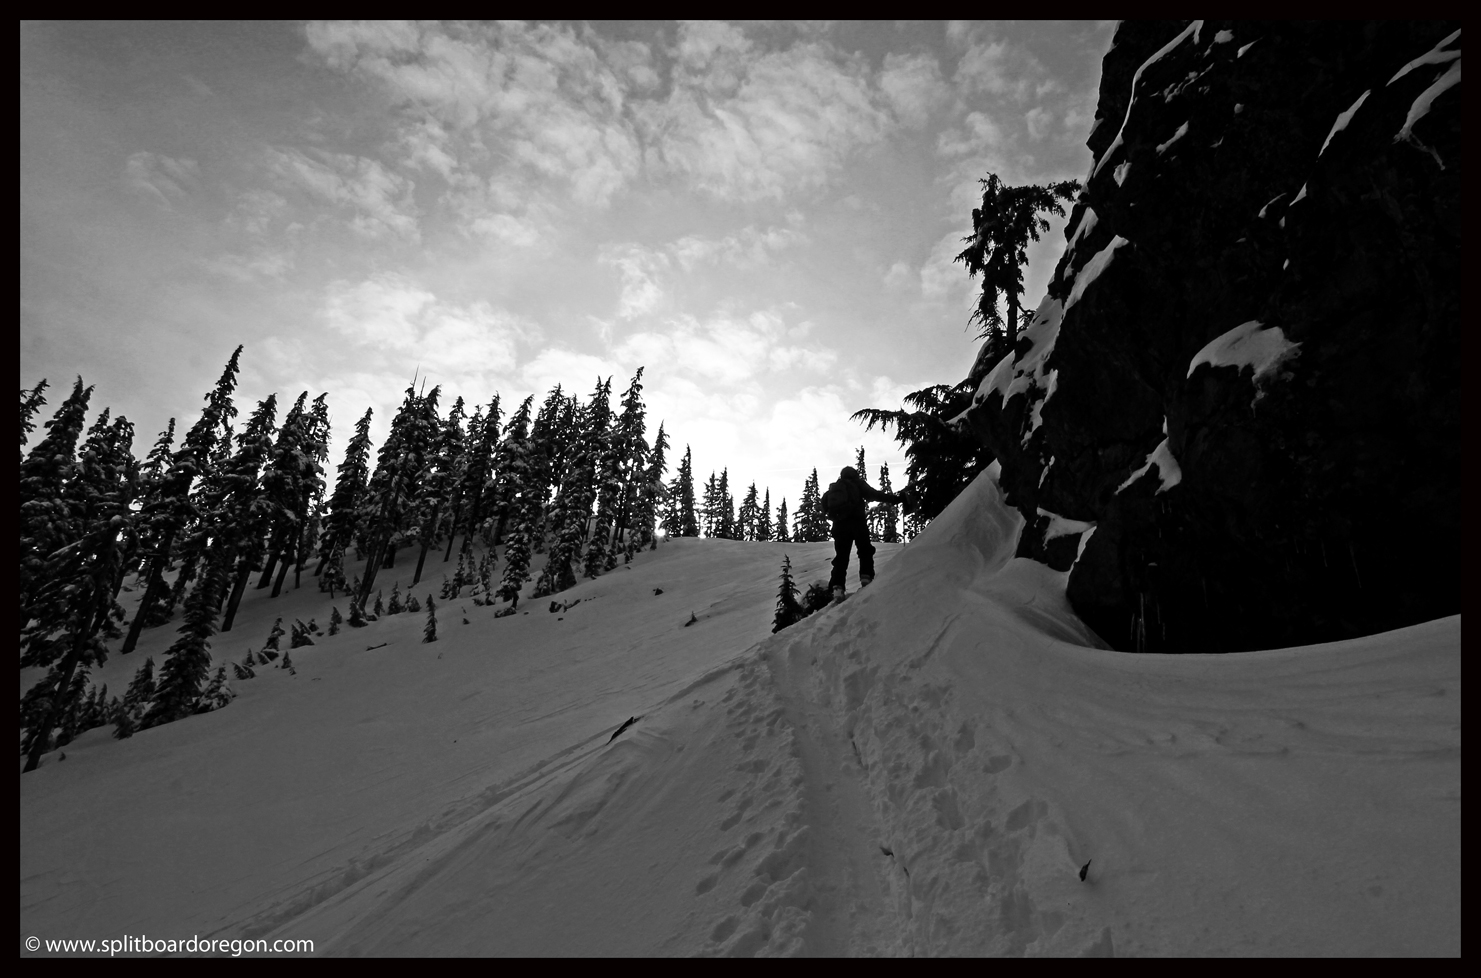 John skinning up June's Run